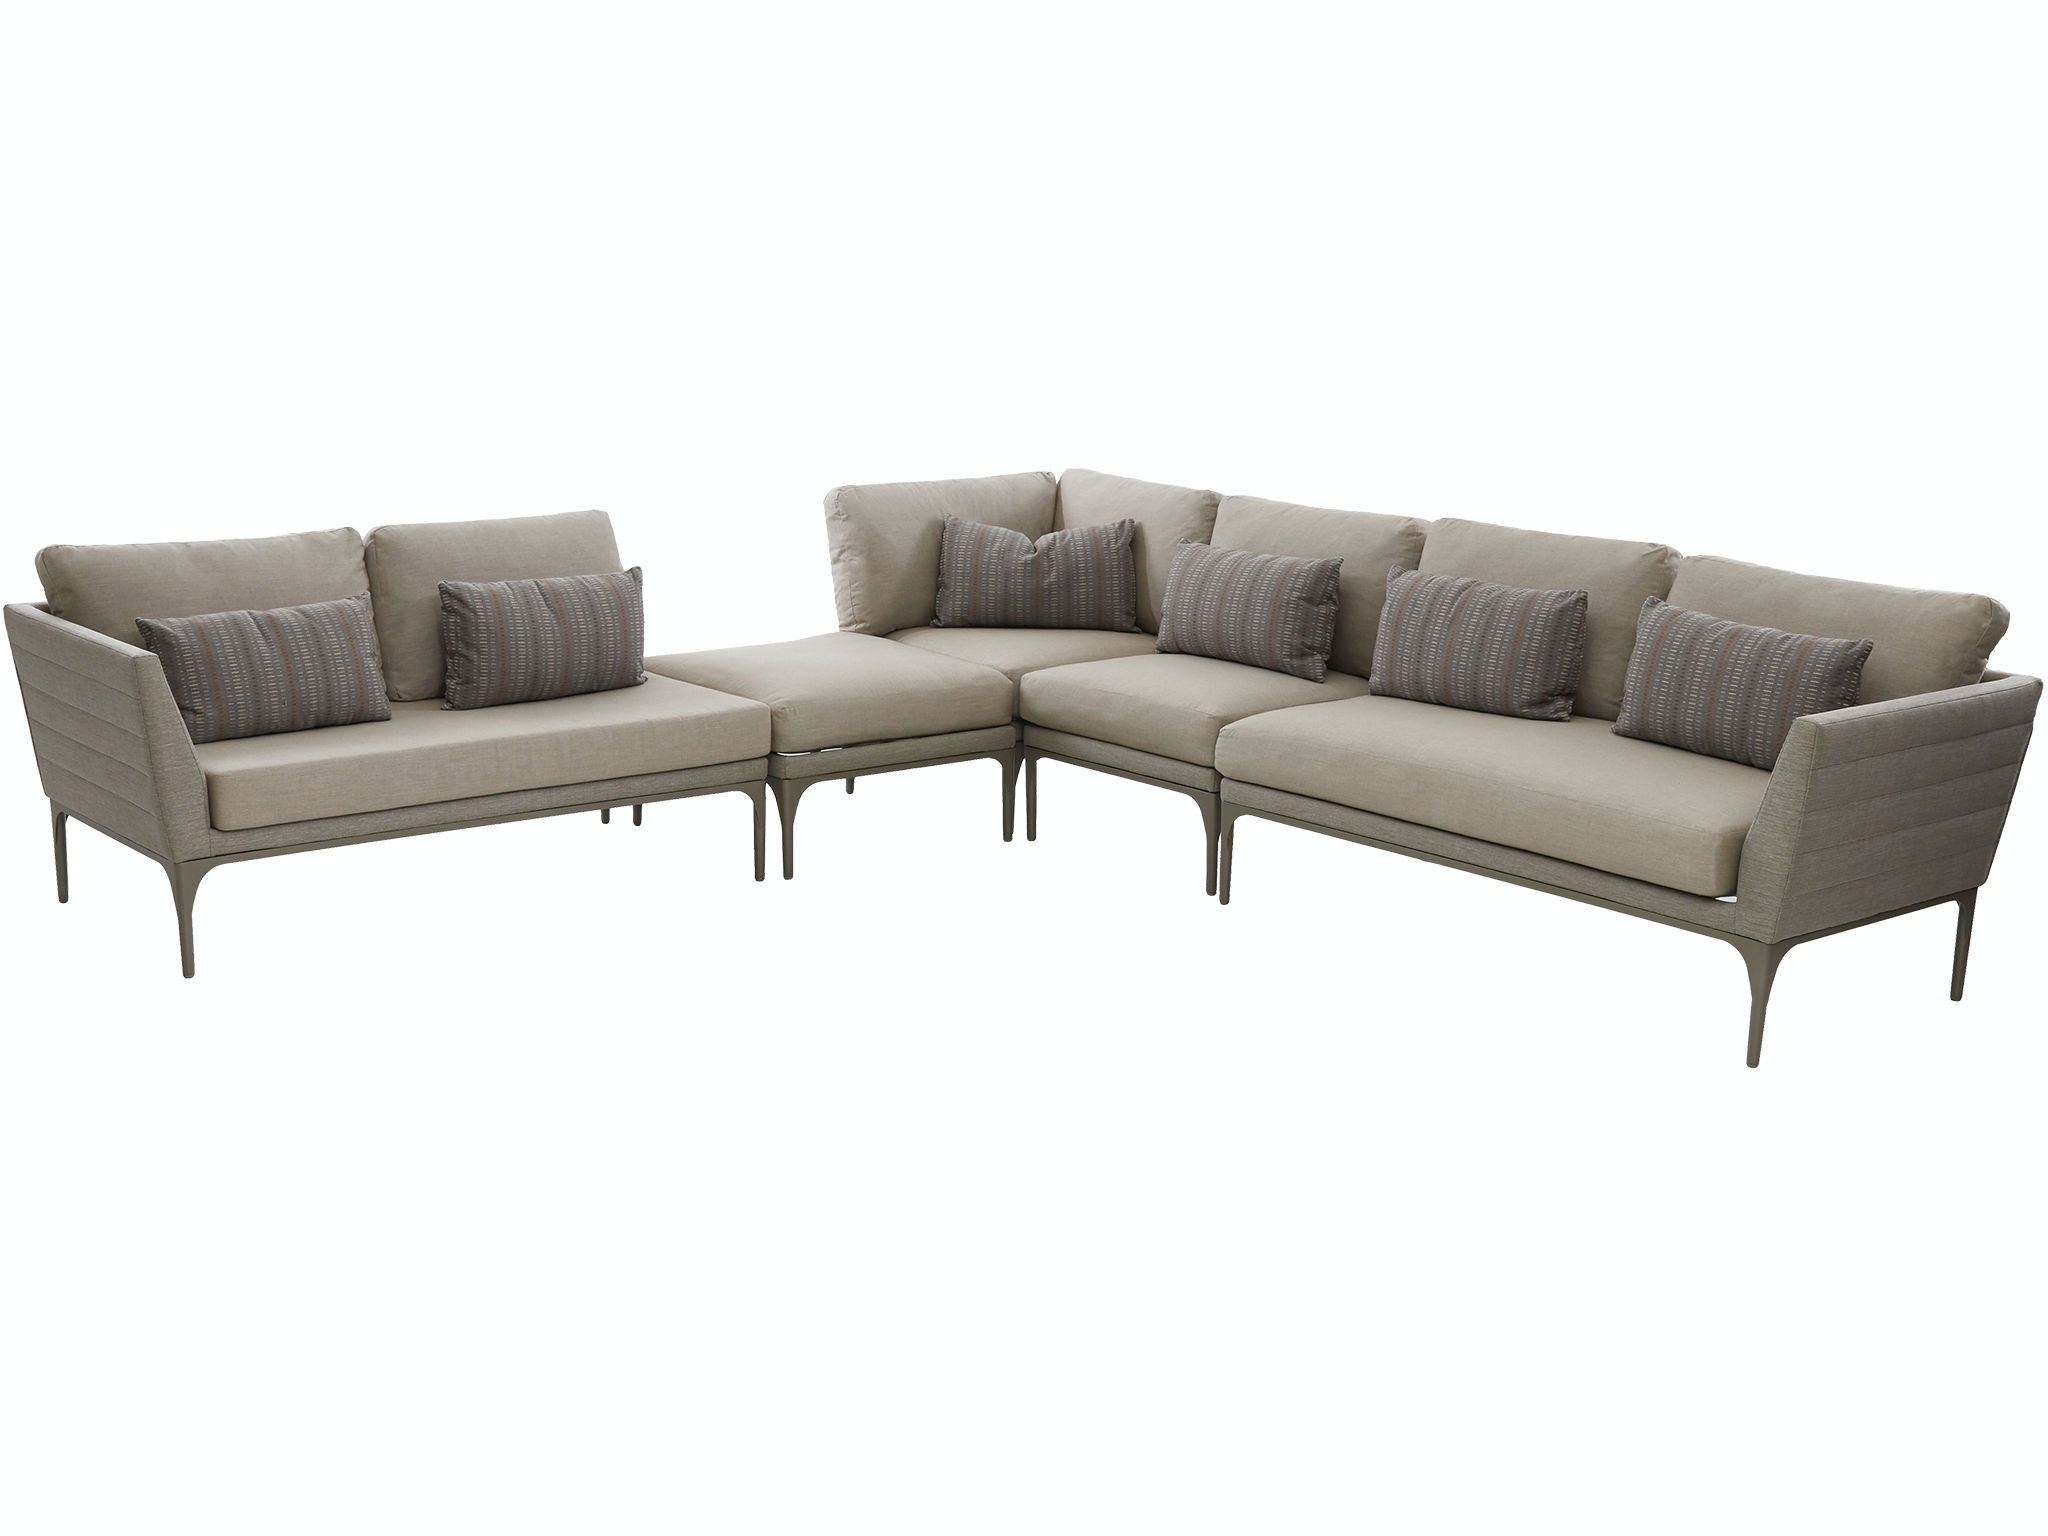 Klaussner Outdoor Urban Retreat Sectional W3500 SECT